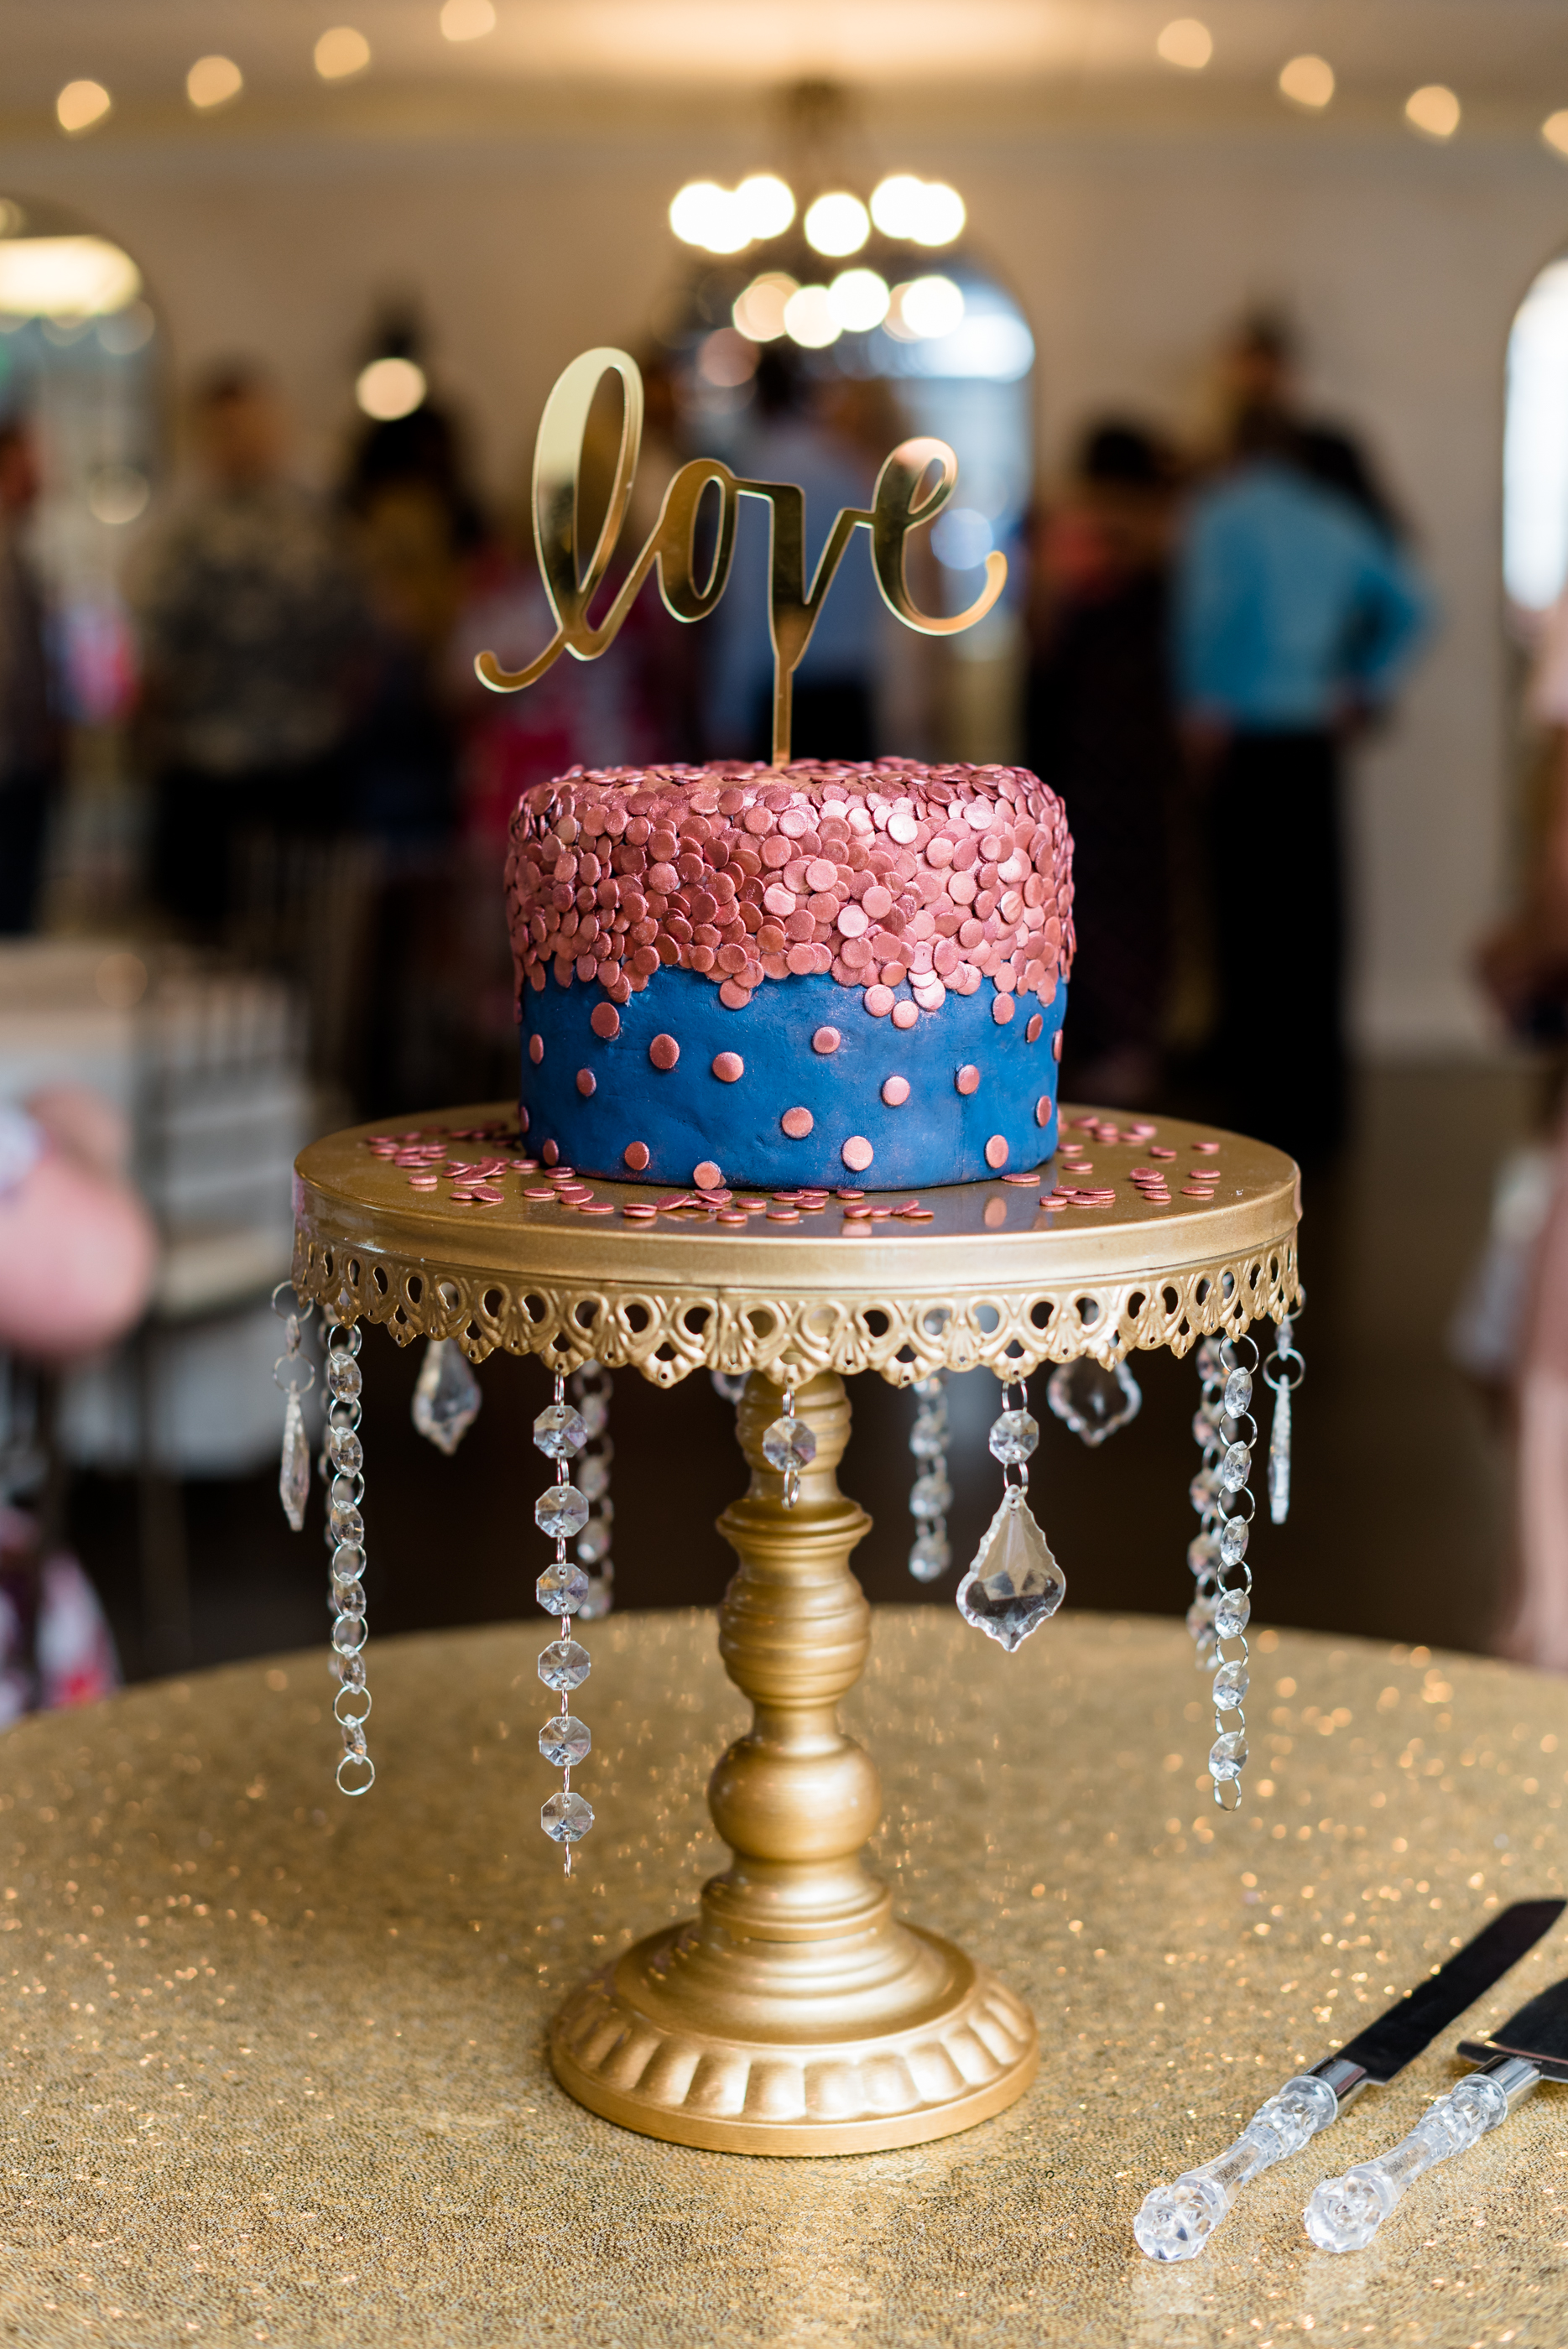 I love the bride and groom personal cake! Love!!